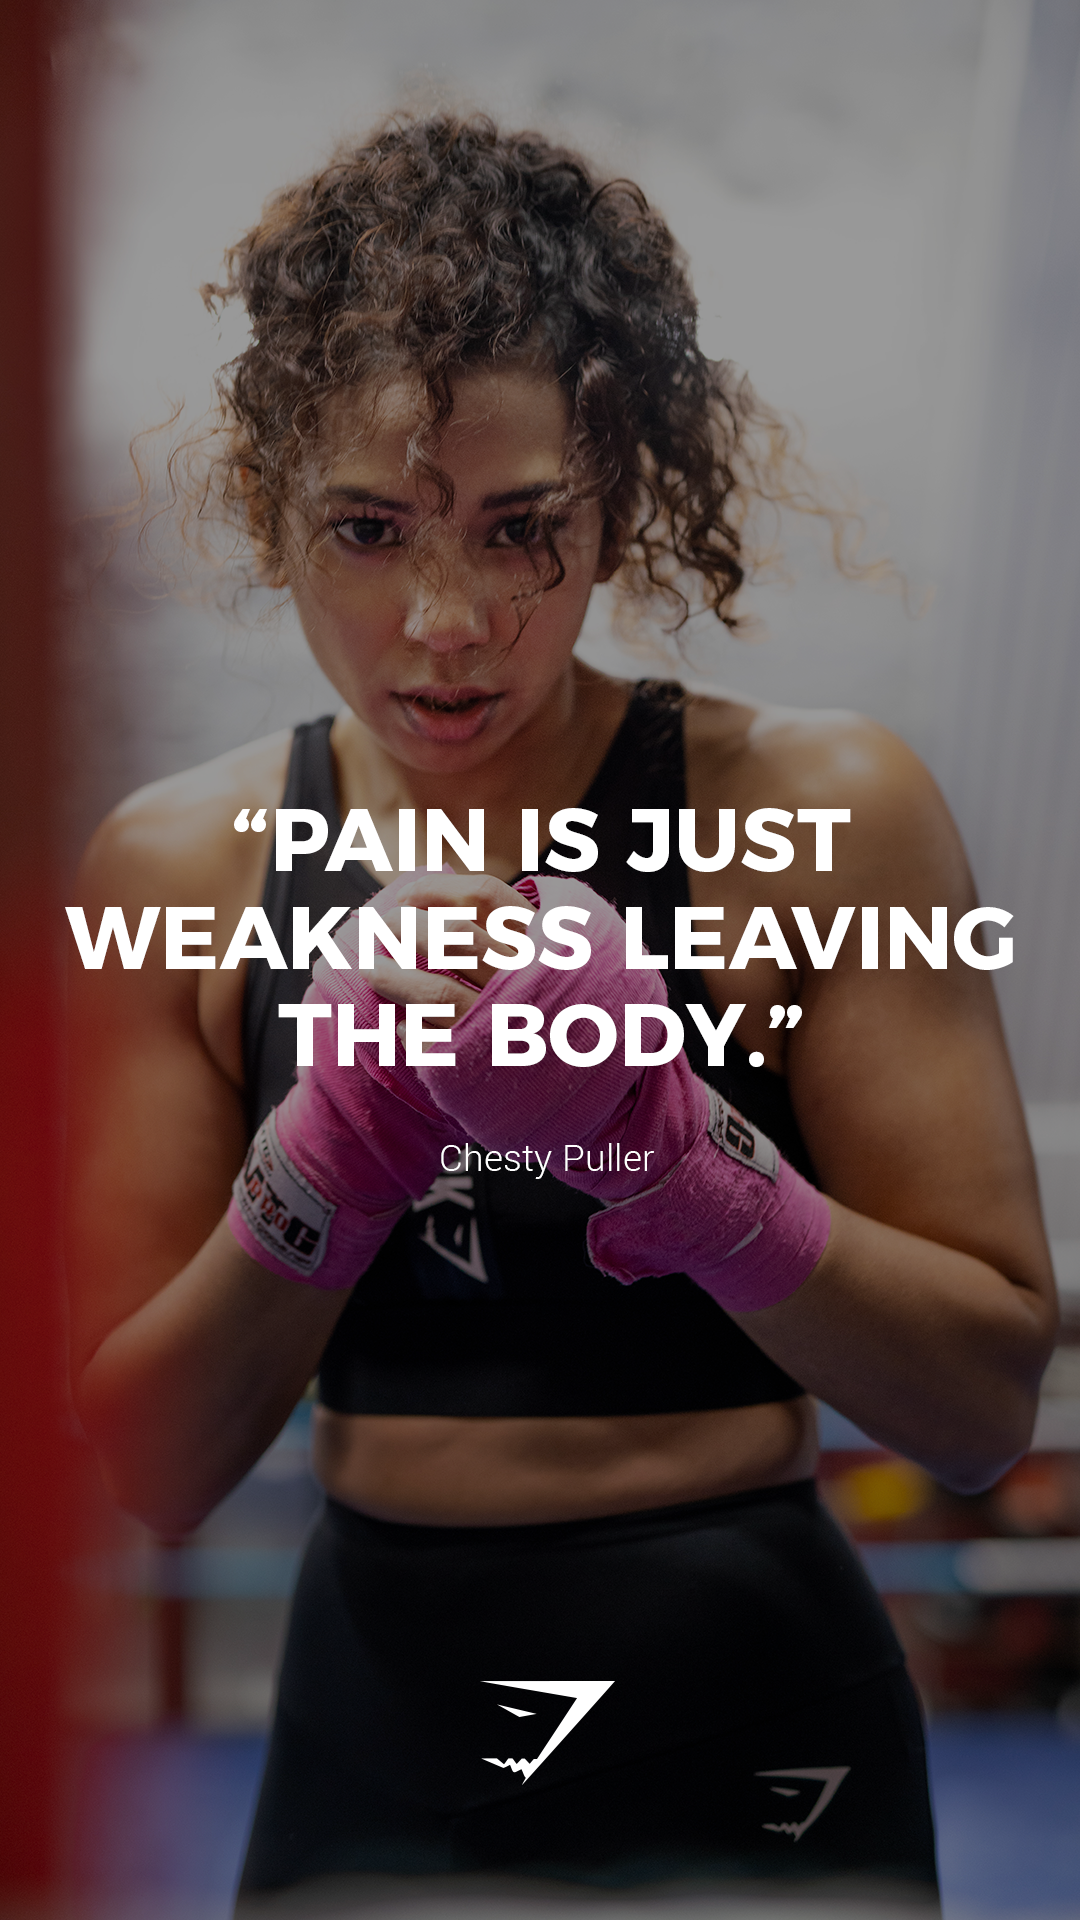 Pain Is Just Weakness Leaving The Body Chesty Puller Gymshark